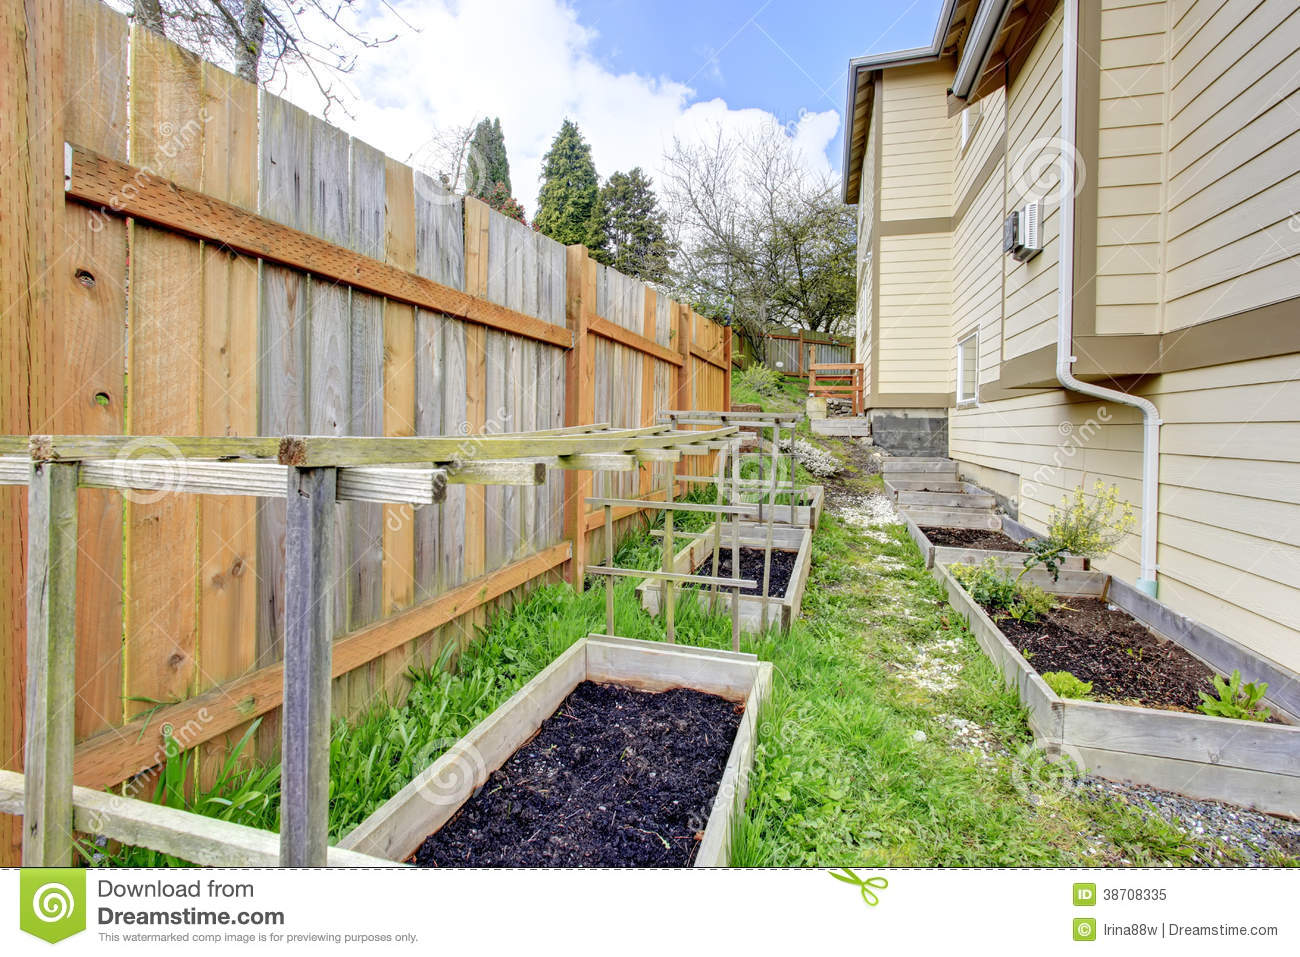 Small Backyard Garden Bed Wih Wooden Trellis Royalty Free